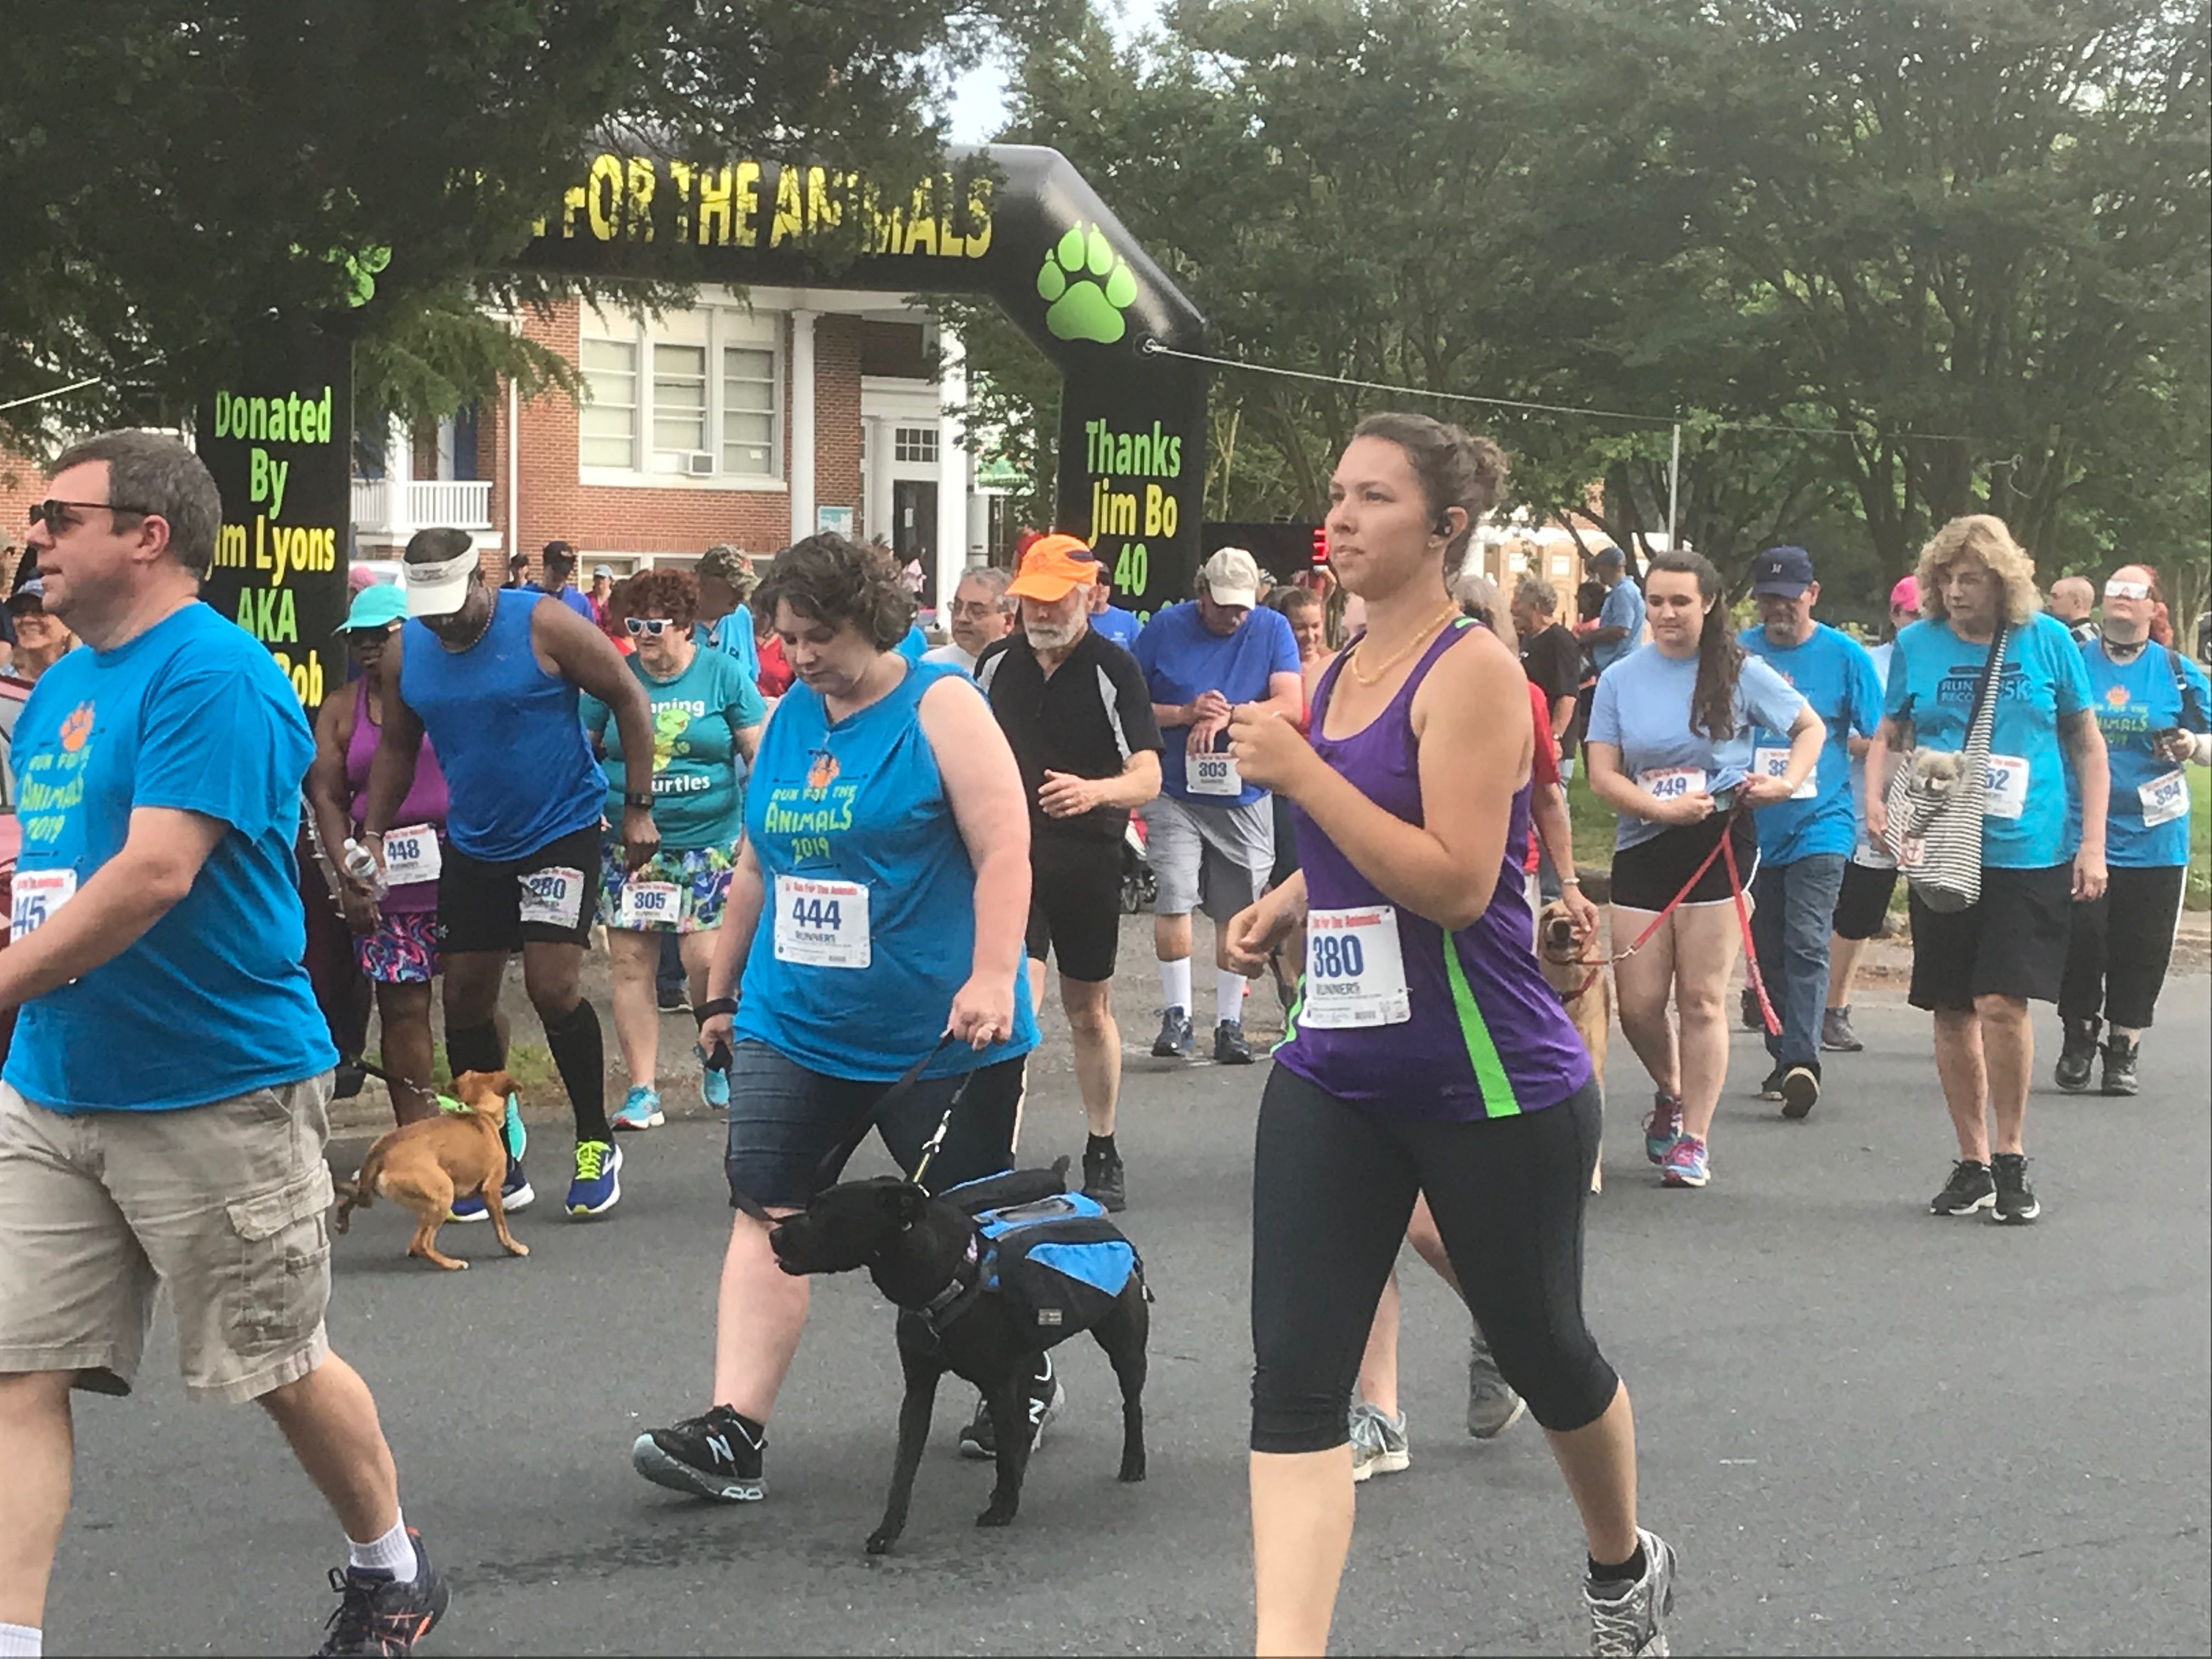 The 2019 Run for the Animals was held in Onancock, Virginia on Saturday, May 11, 2019.